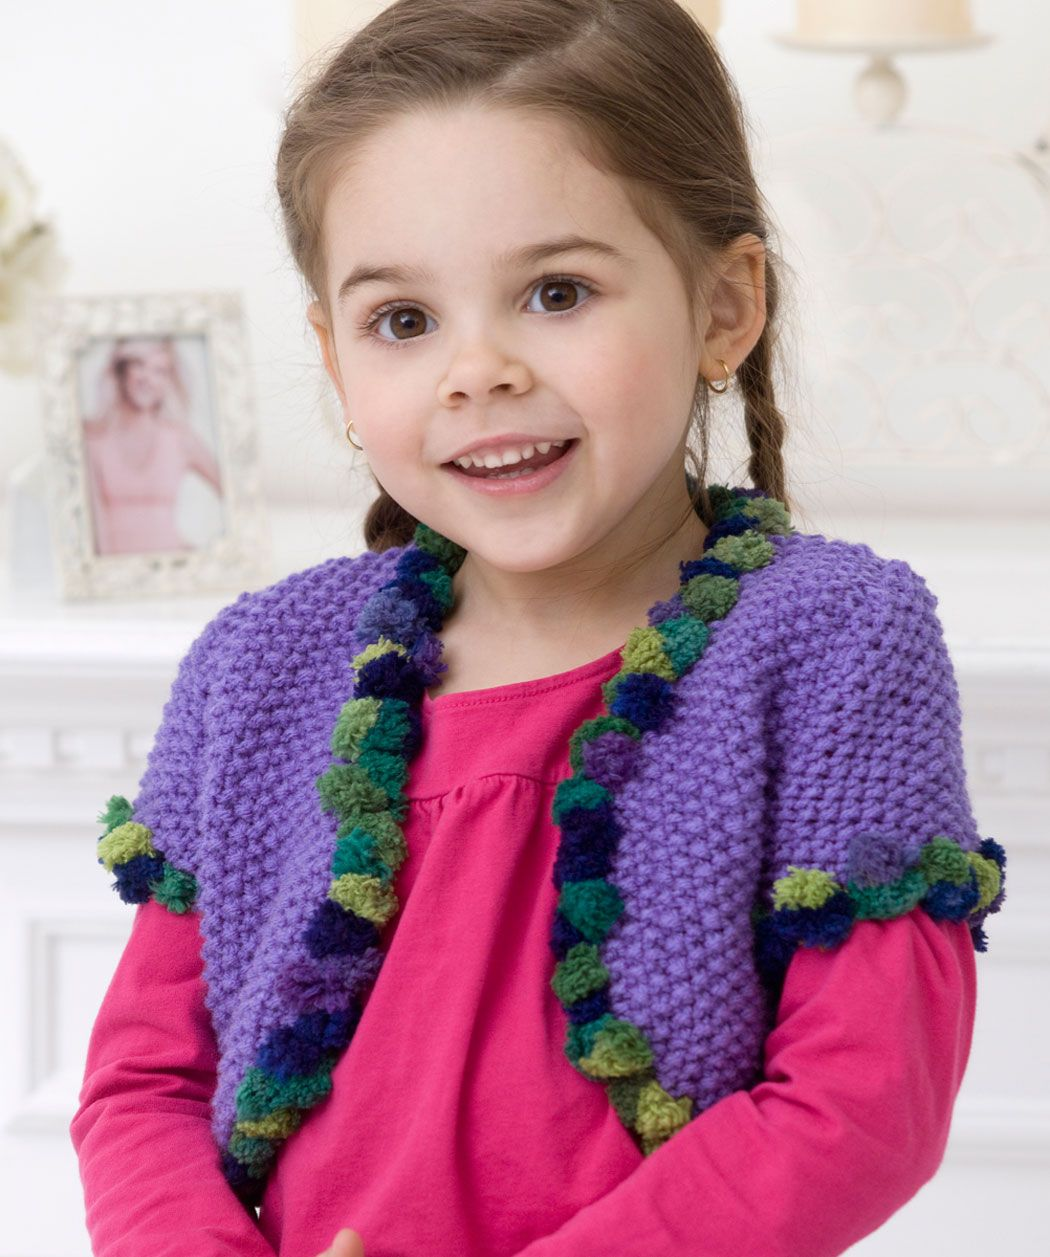 Girls Bolero Knitting Pattern. Red Heart Free Pattern - no ...